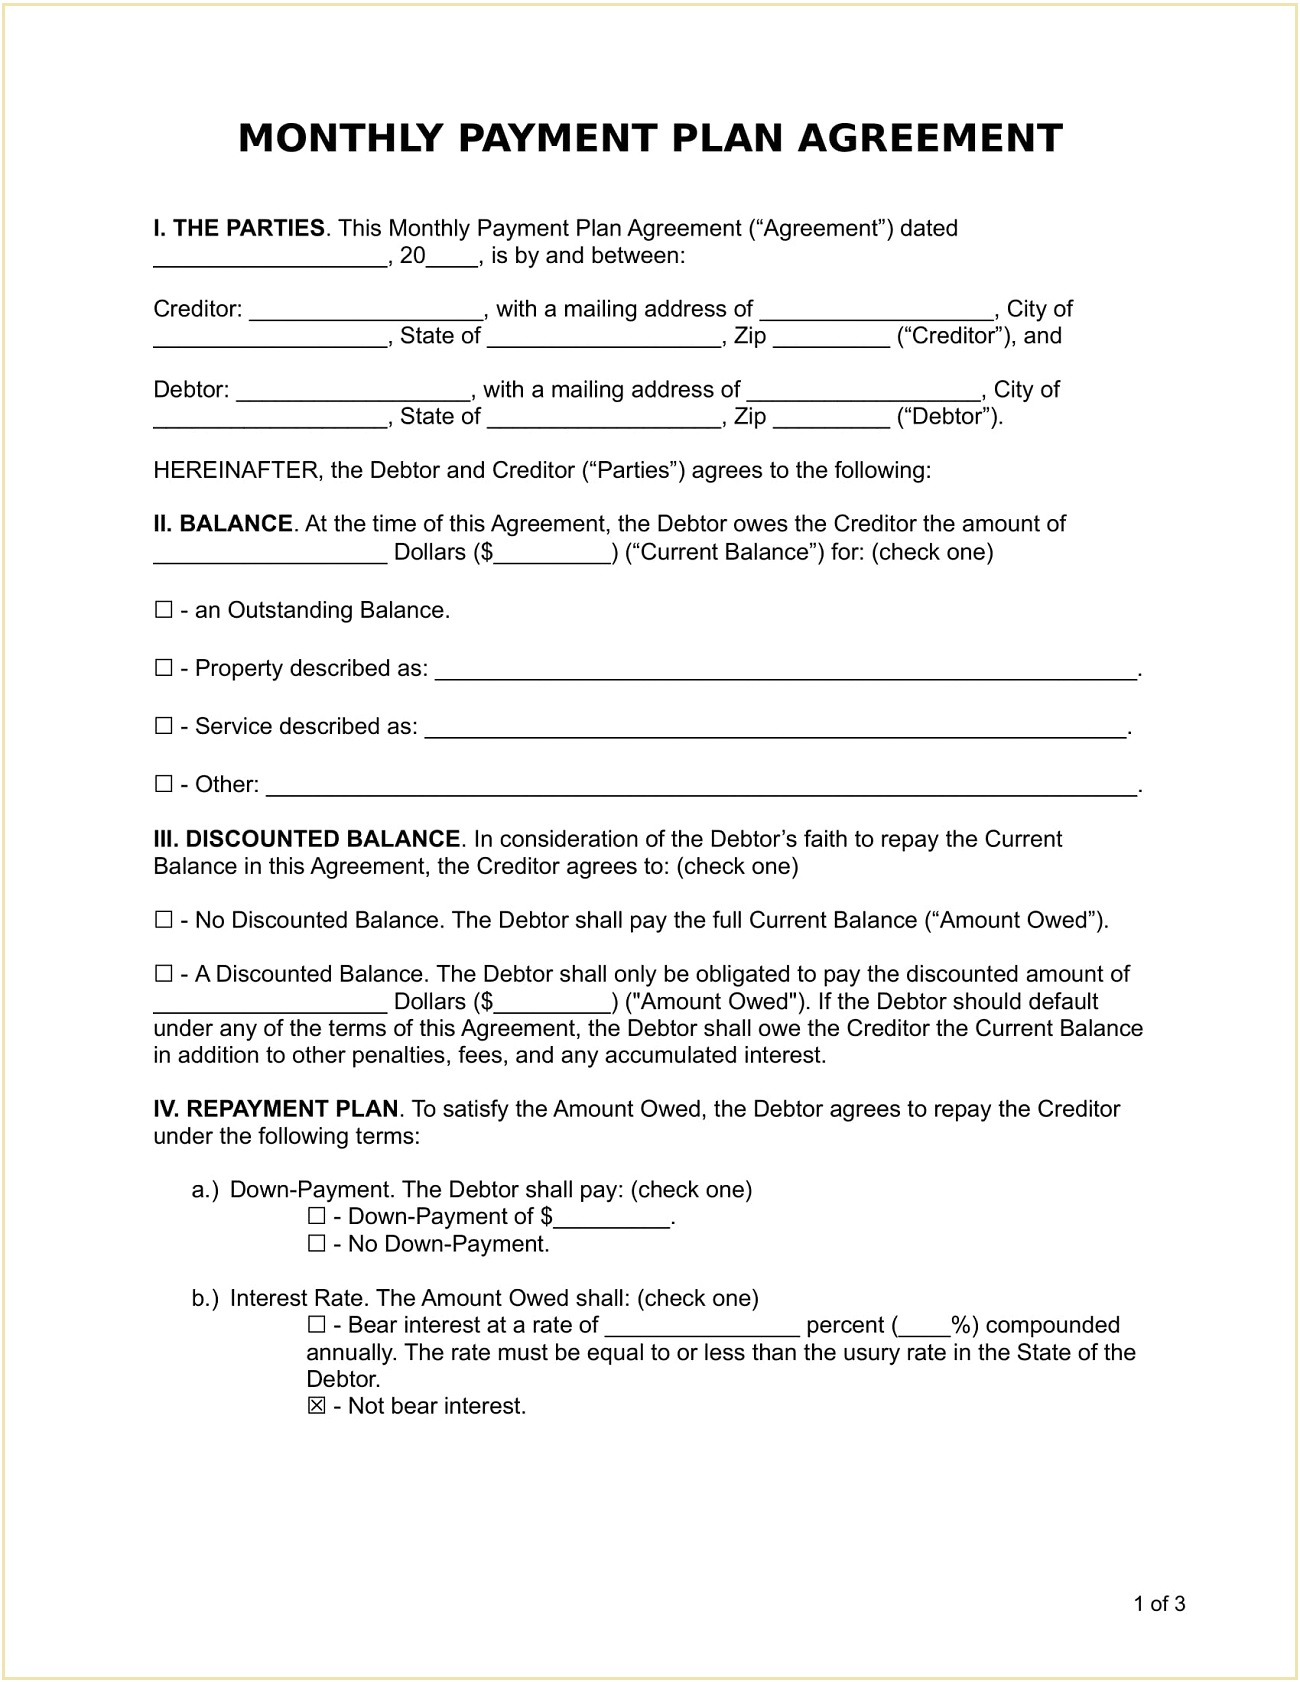 Monthly Recurring Payment Plan Agreement Form Template Word